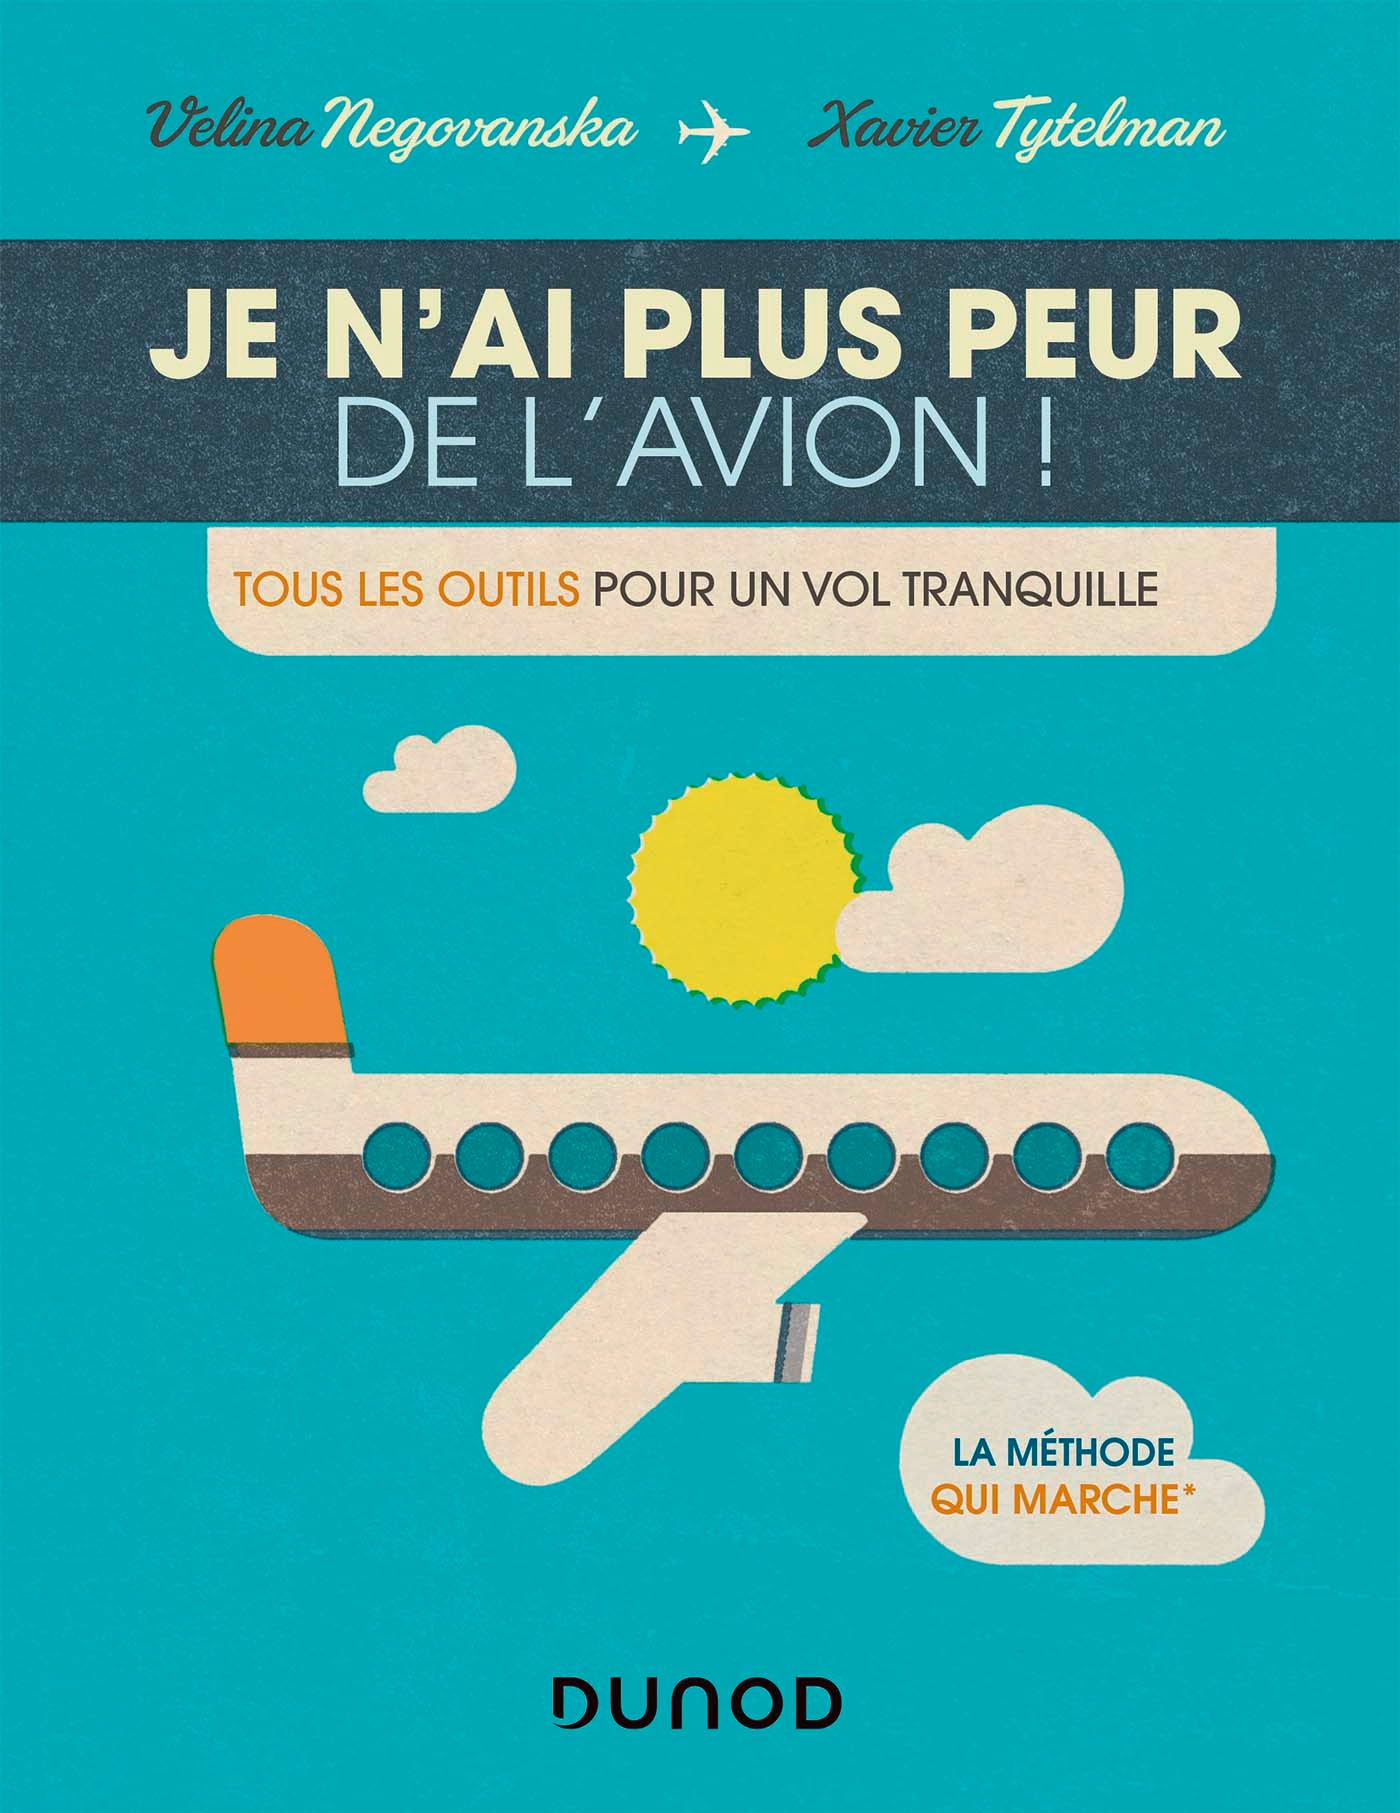 Je n'ai plus peur de l'avion !